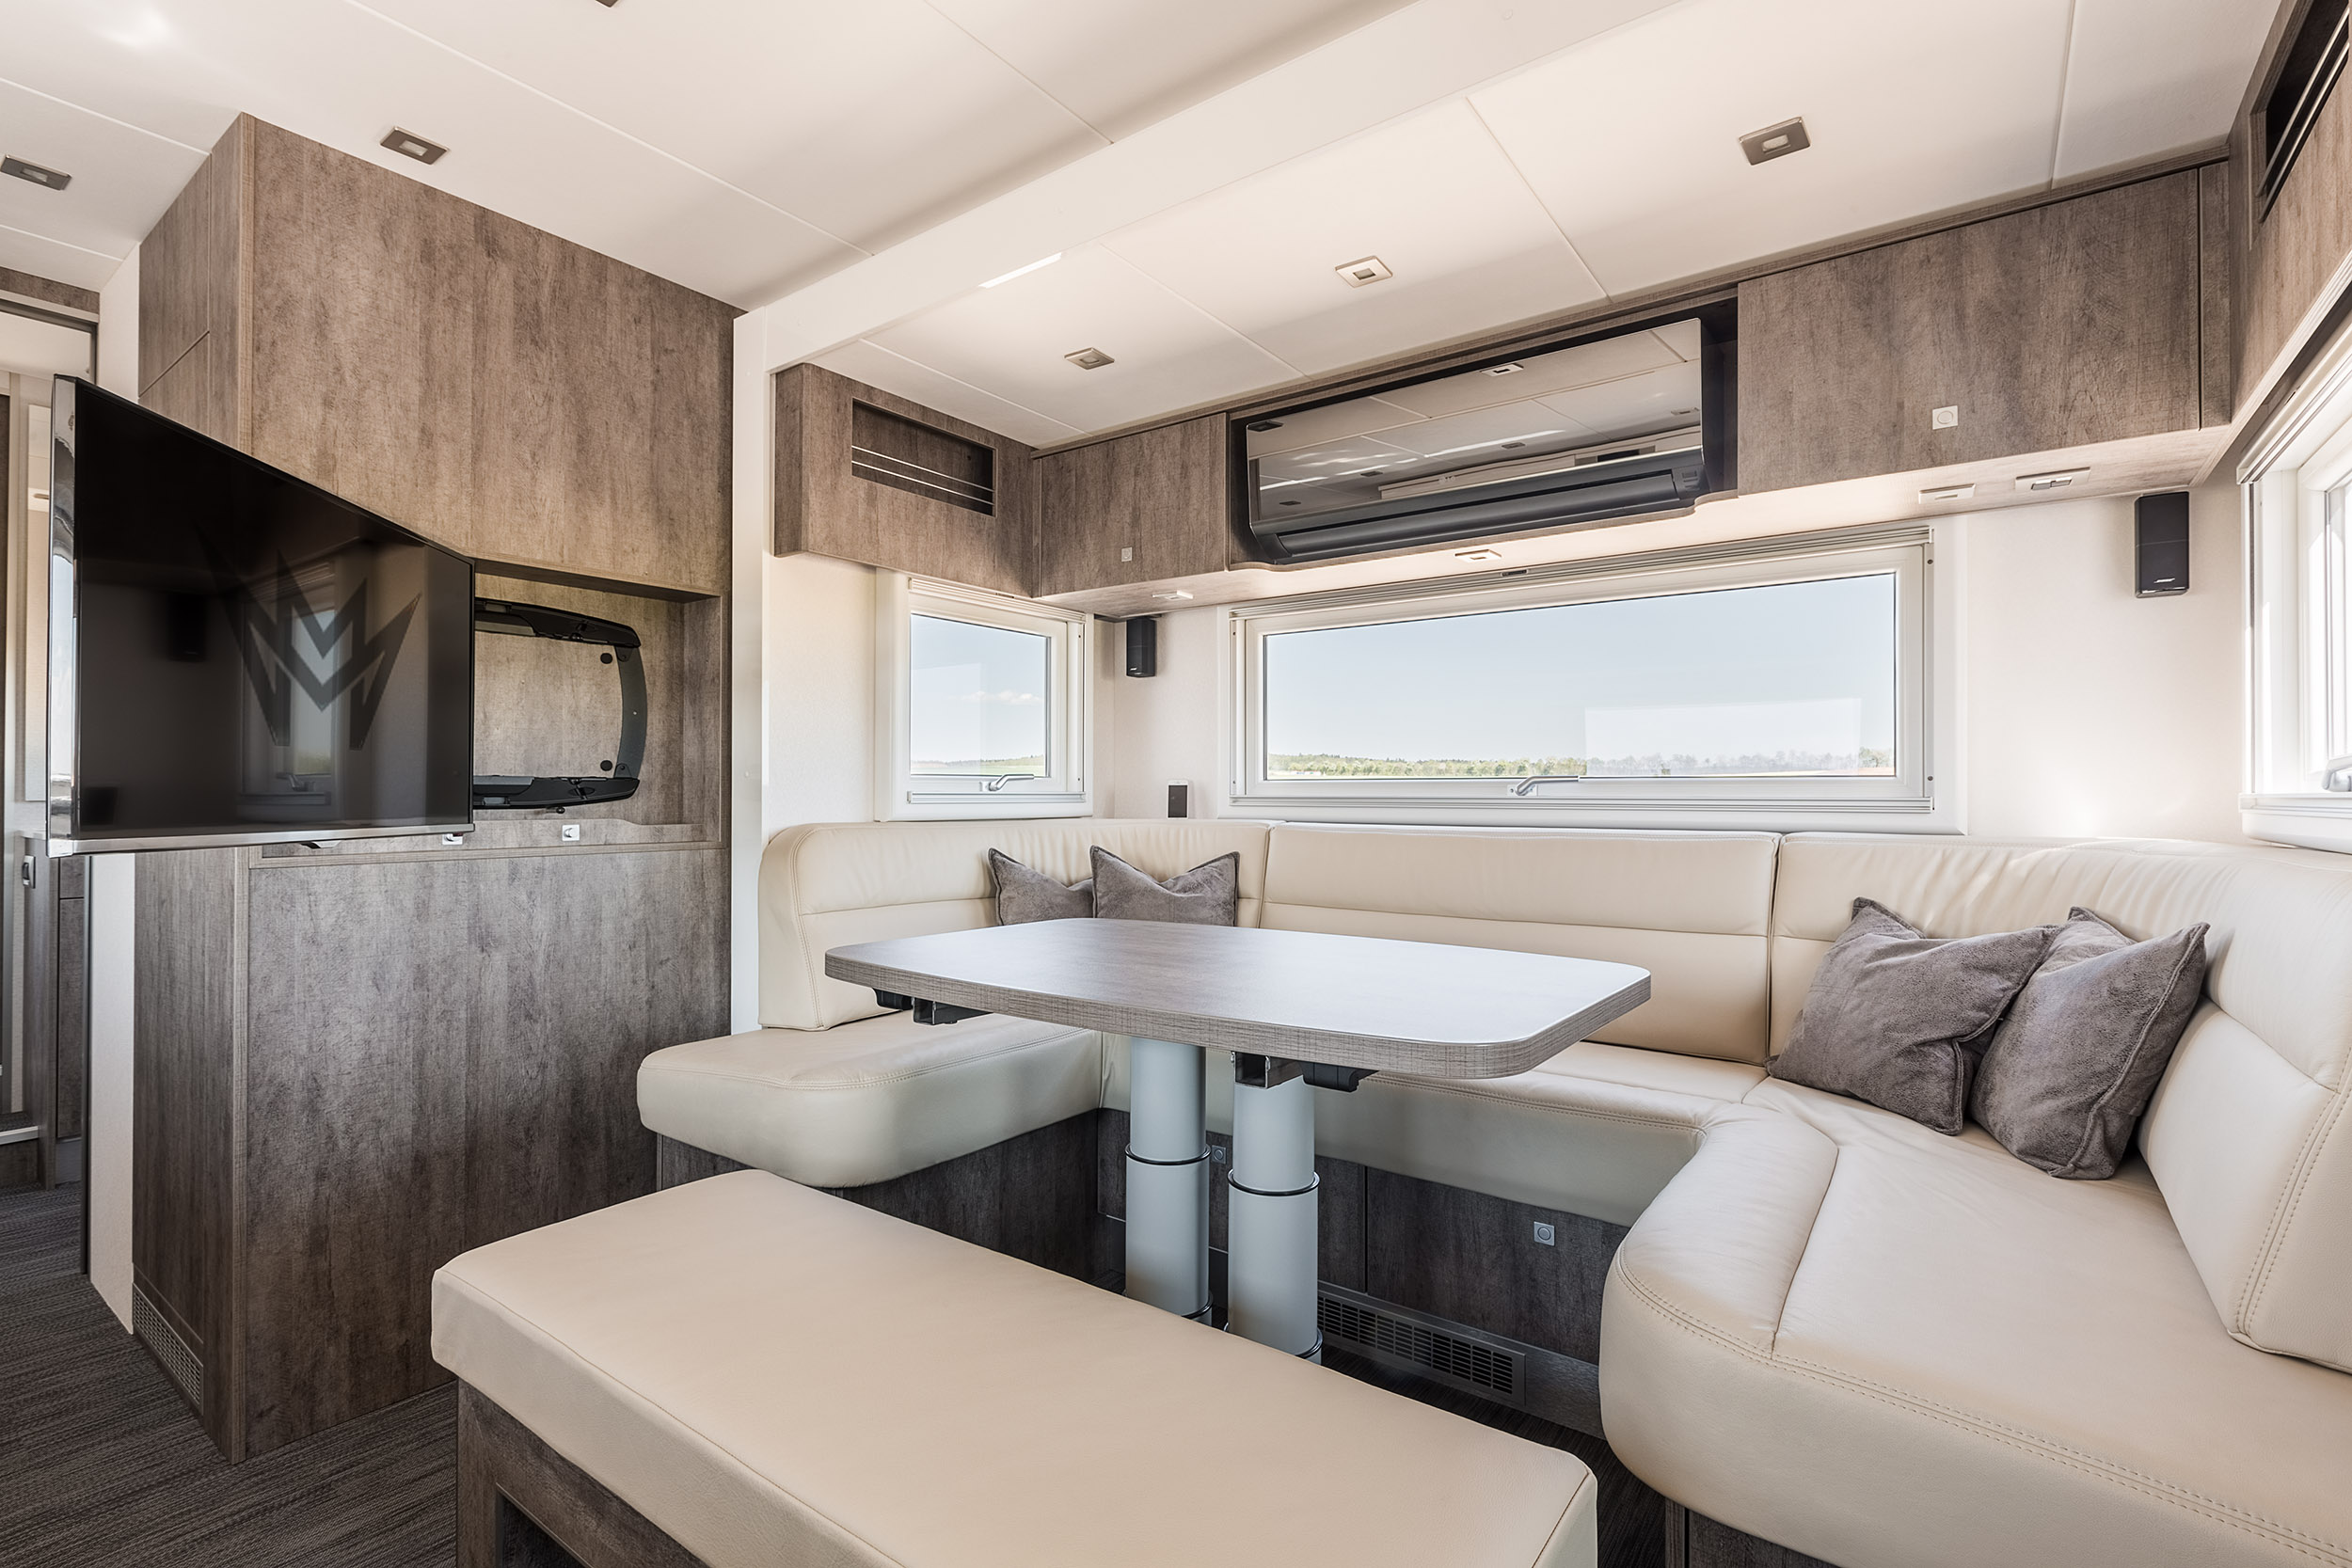 Photography, Interieur, Möbel, Mercedes Actros Wohnmobil, Motorhome